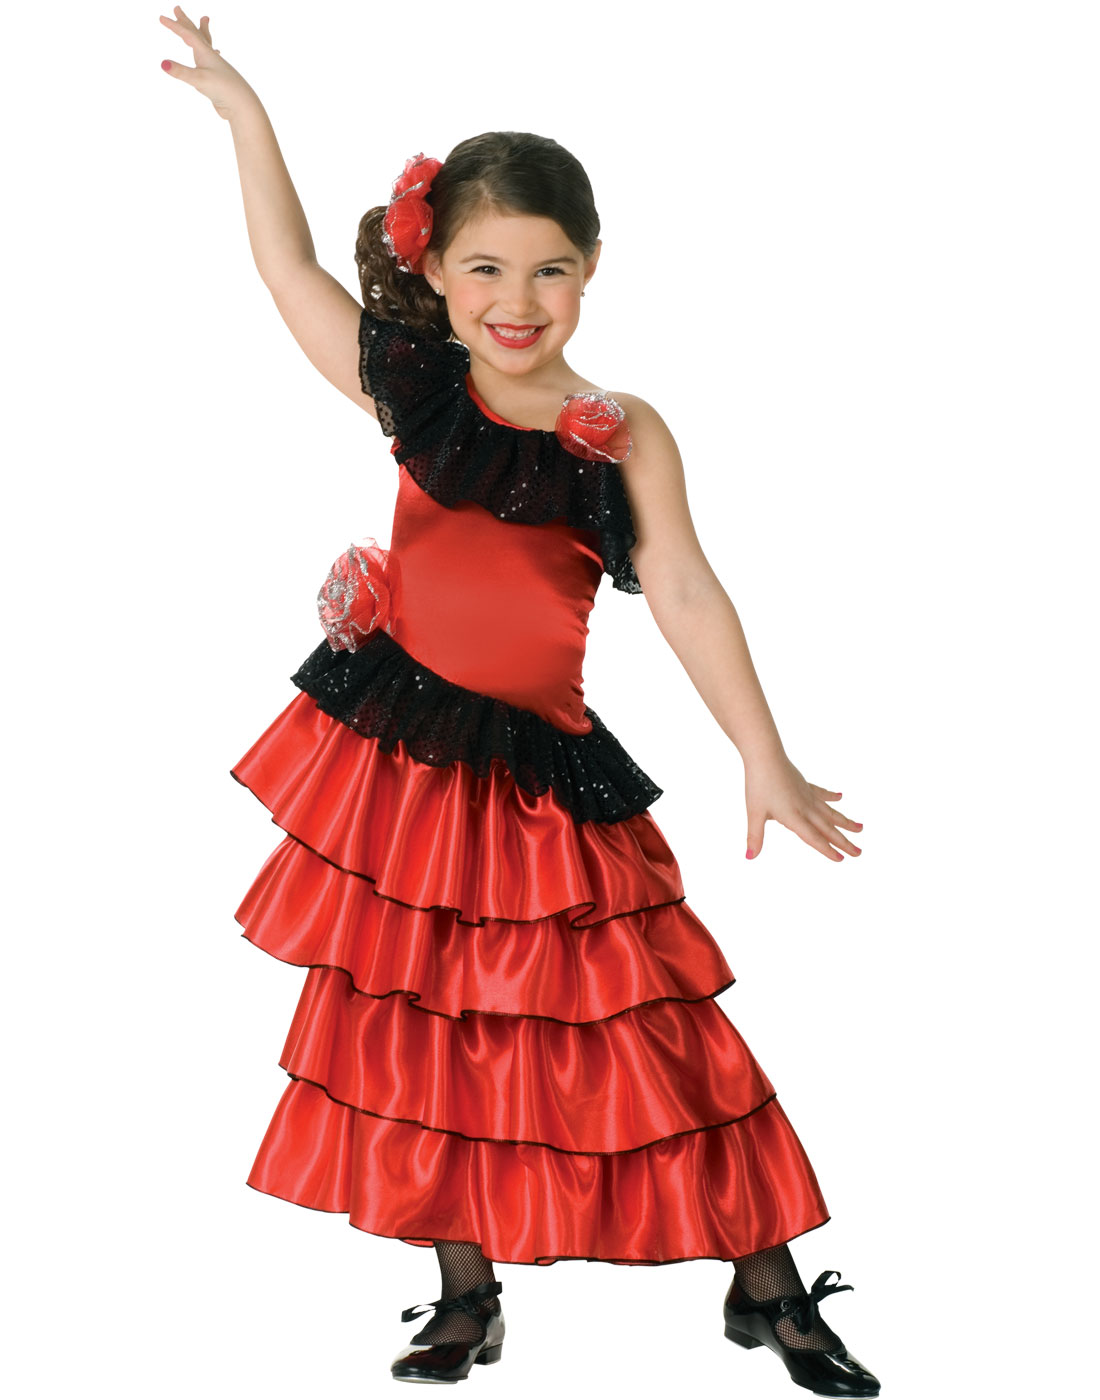 e44bb7aa3 Sentinel Spanish Senorita Girls Fancy Dress Flamenco Dancer Kids National  Costume